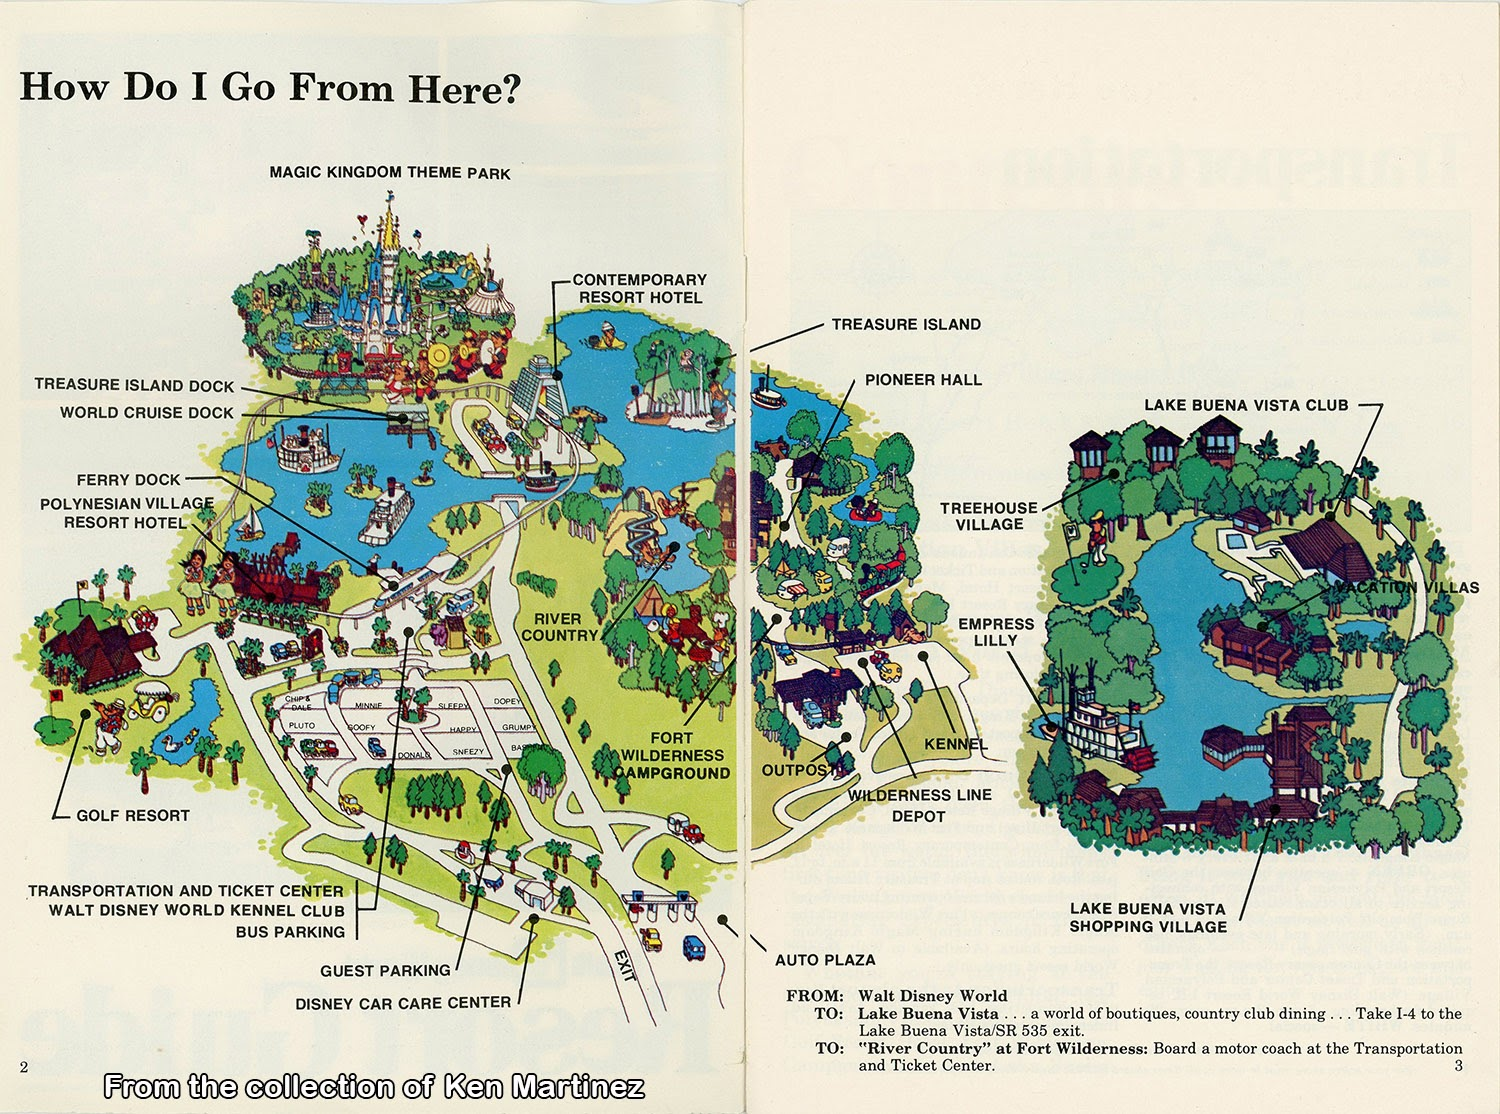 GORILLAS DON'T BLOG: Walt Disney World – Resort Guide 1977 (Part on